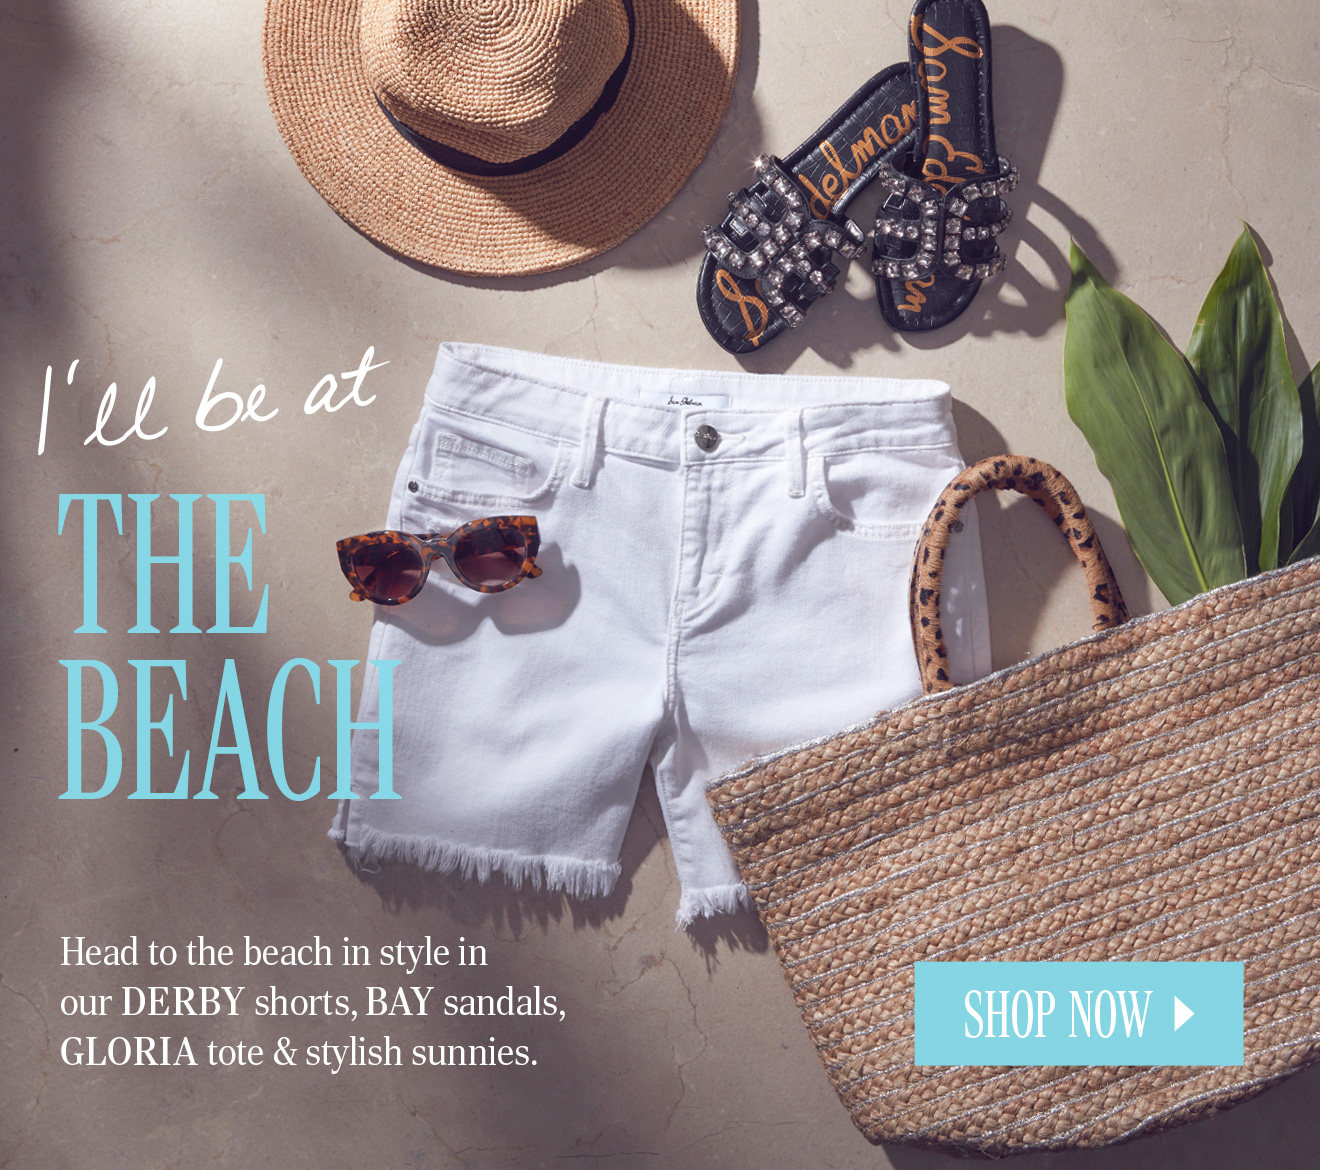 I'LL BE AT THE BEACH. Head to the beach in style inour DERBY shorts, BAY sandals, GLORIA tote & stylish sunnies. SHOP NOW.